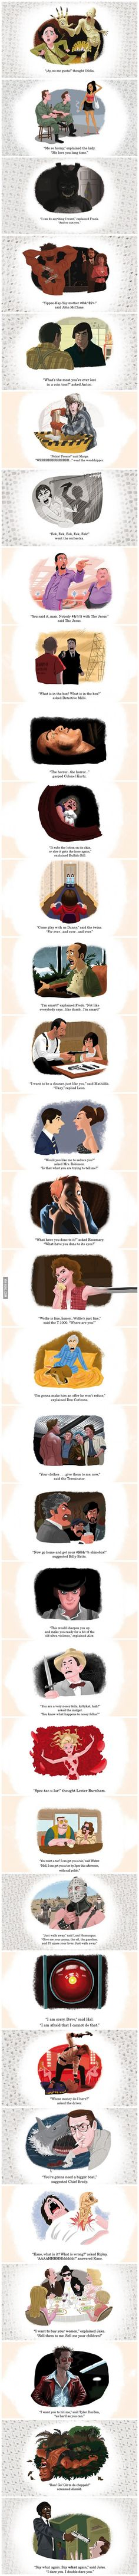 How many Movies can you recognize? Famous Movie Scenes as Book Illustrations